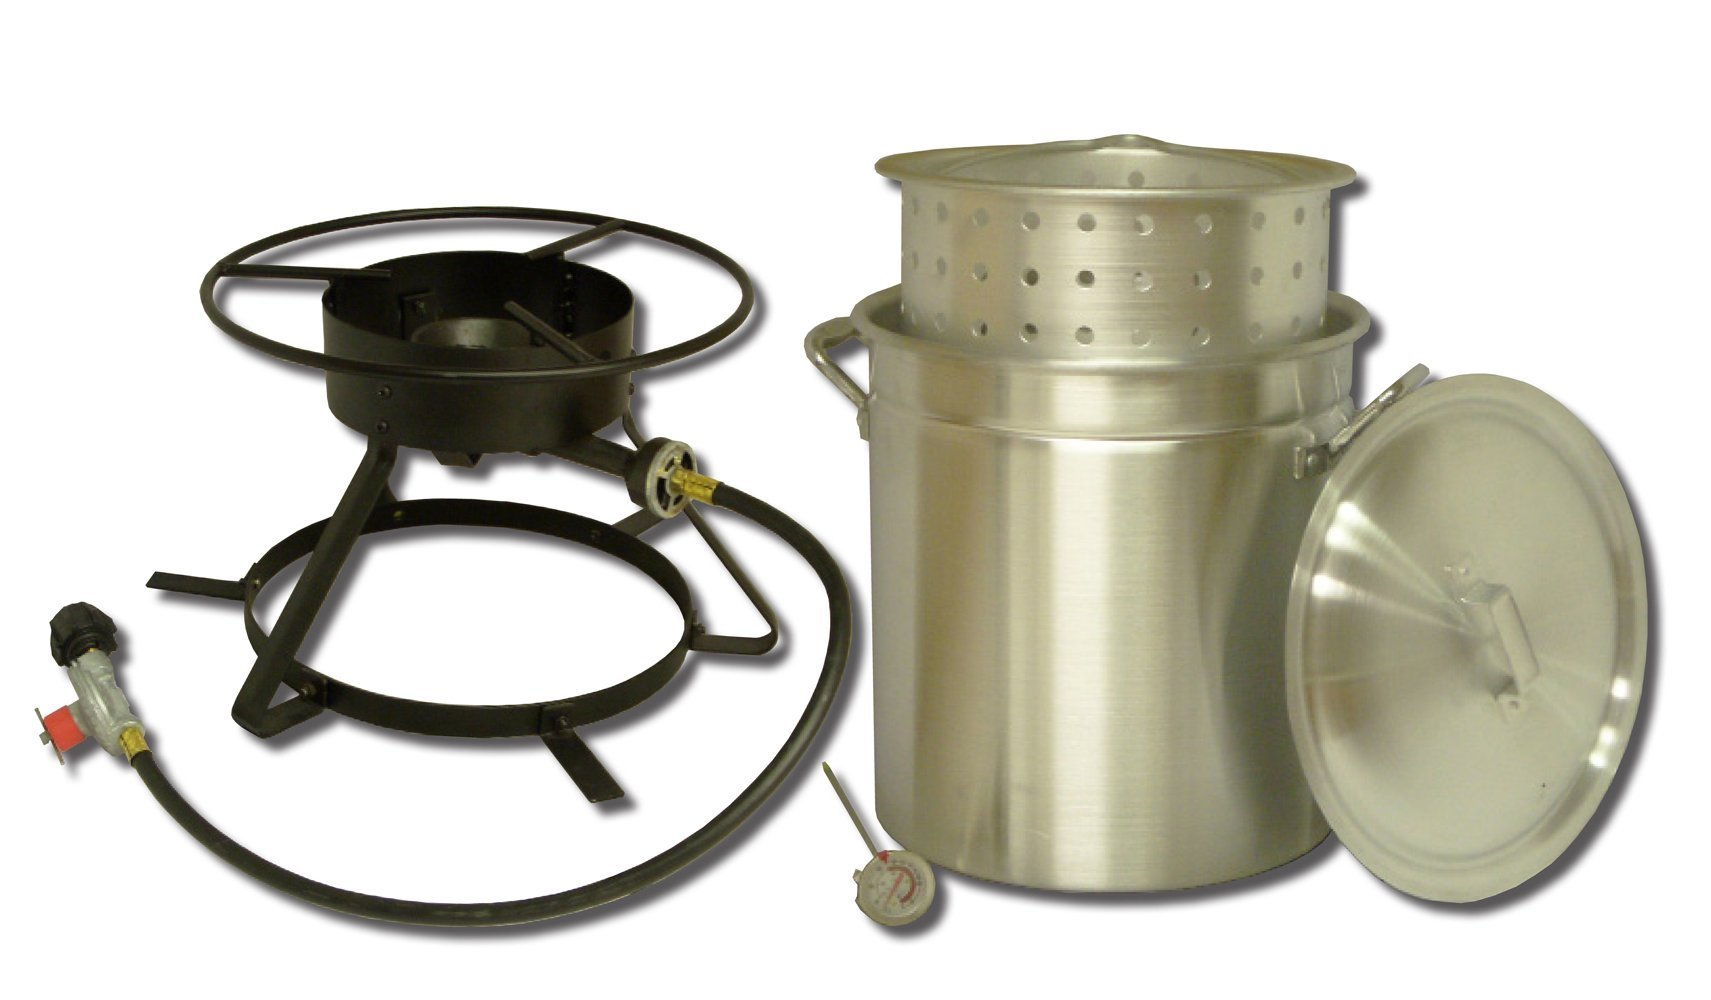 King Kooker 5012 Portable Propane Outdoor Boiling and Steaming Cooker Package with 50-Quart Aluminum Pot and Steaming Basket by King Kooker